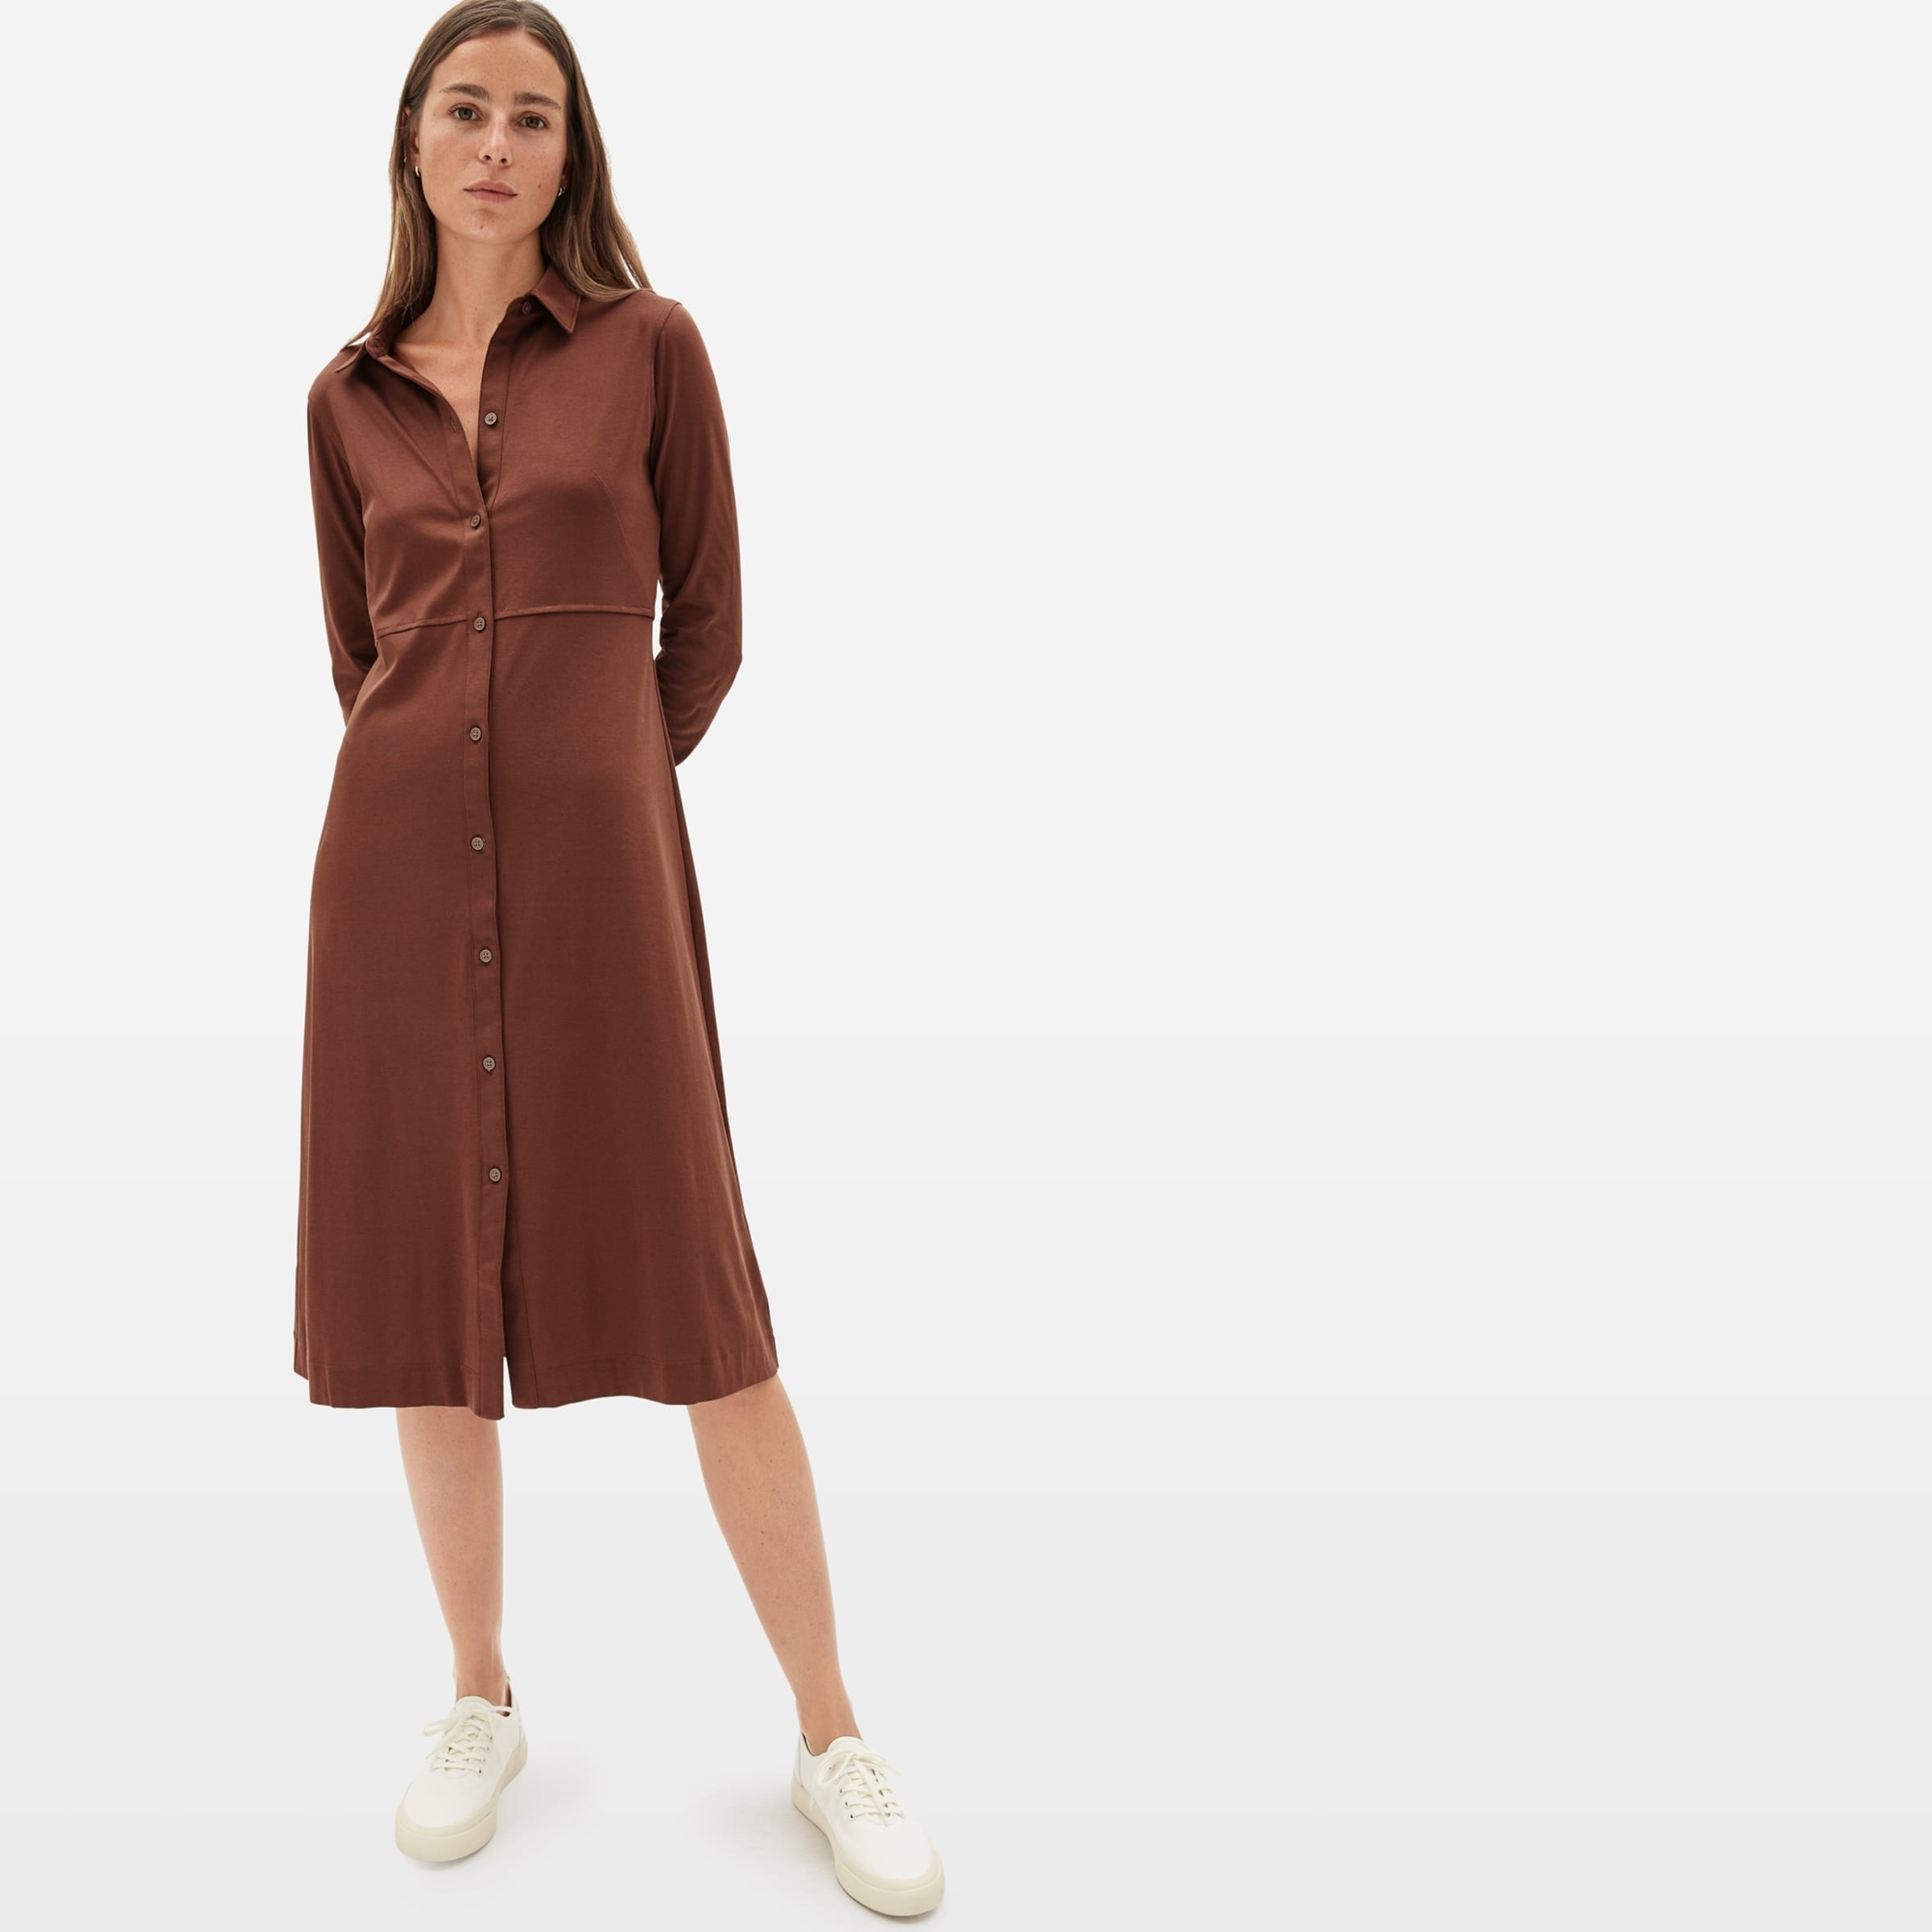 Model wearing the knee-length button-down dress in brown